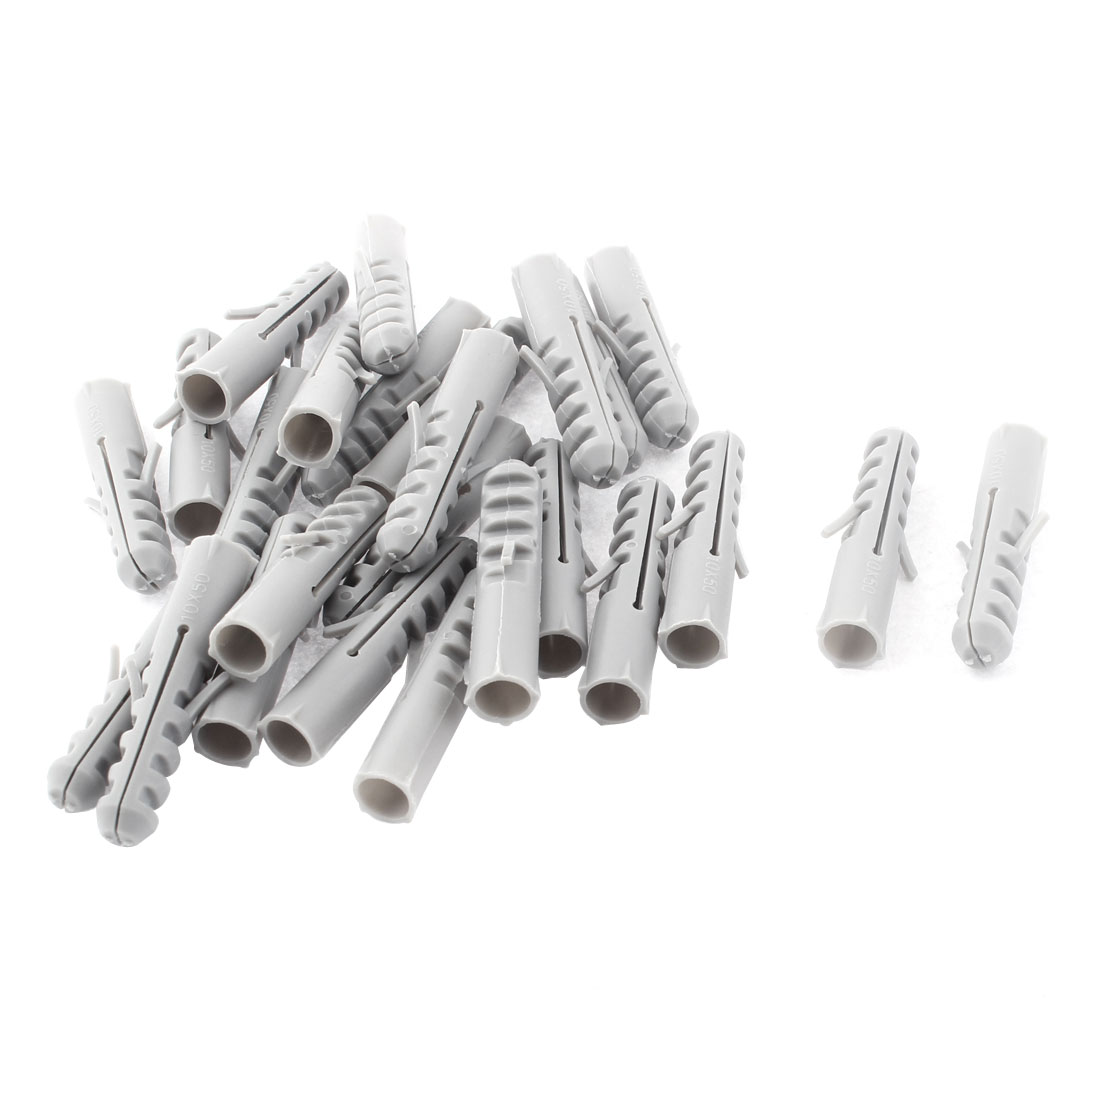 25 Pcs M10 x 50mm Plastic Anchors Lag Expand Expansion Nails Plugs Wall Screws Cable Clips